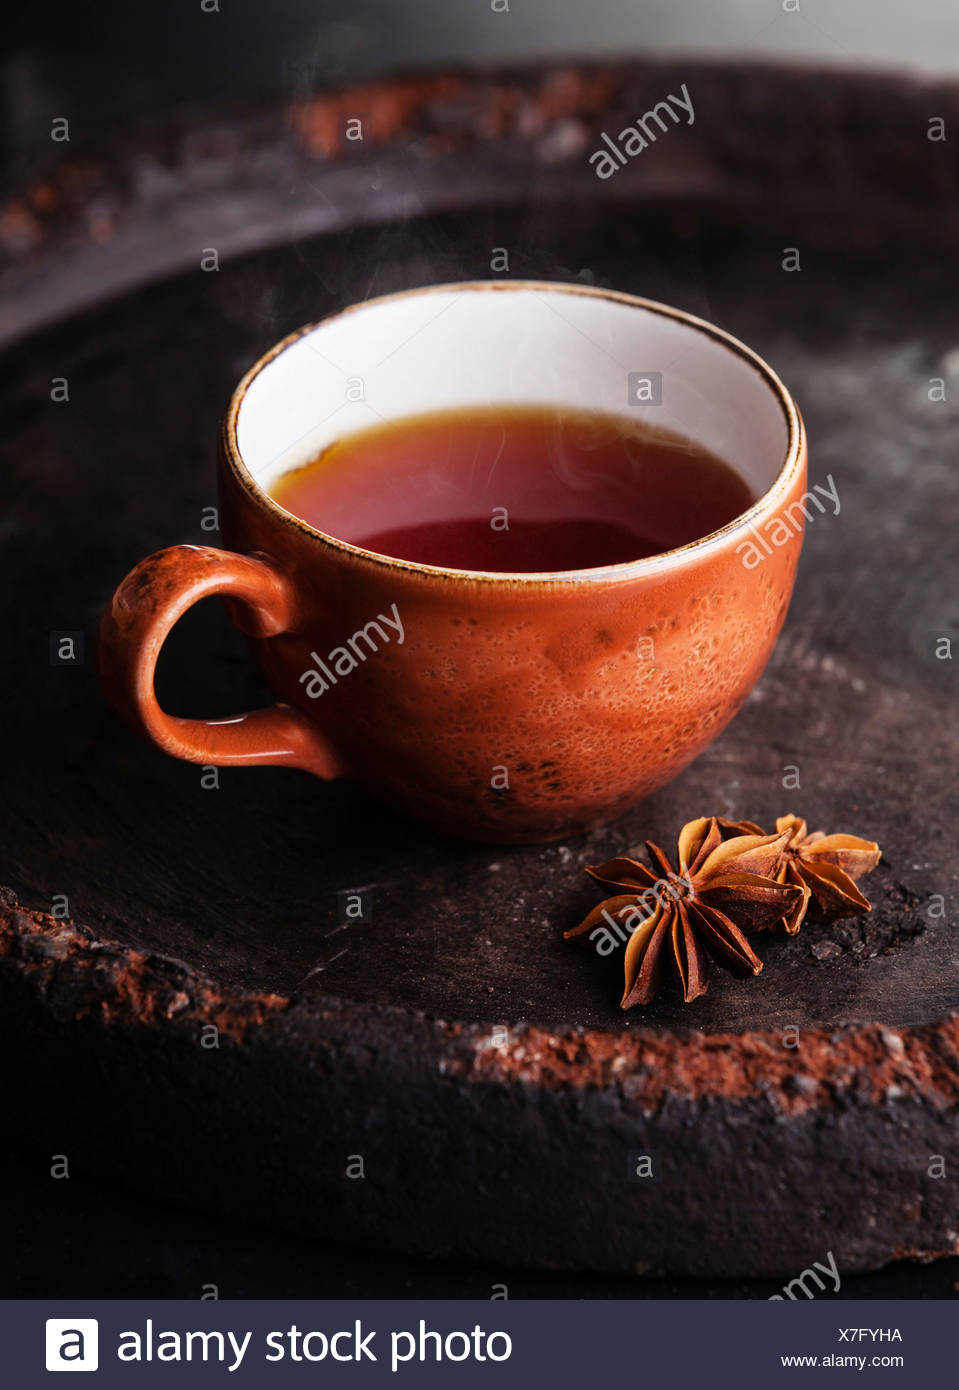 Hot tea with spices on dark background - Stock Image